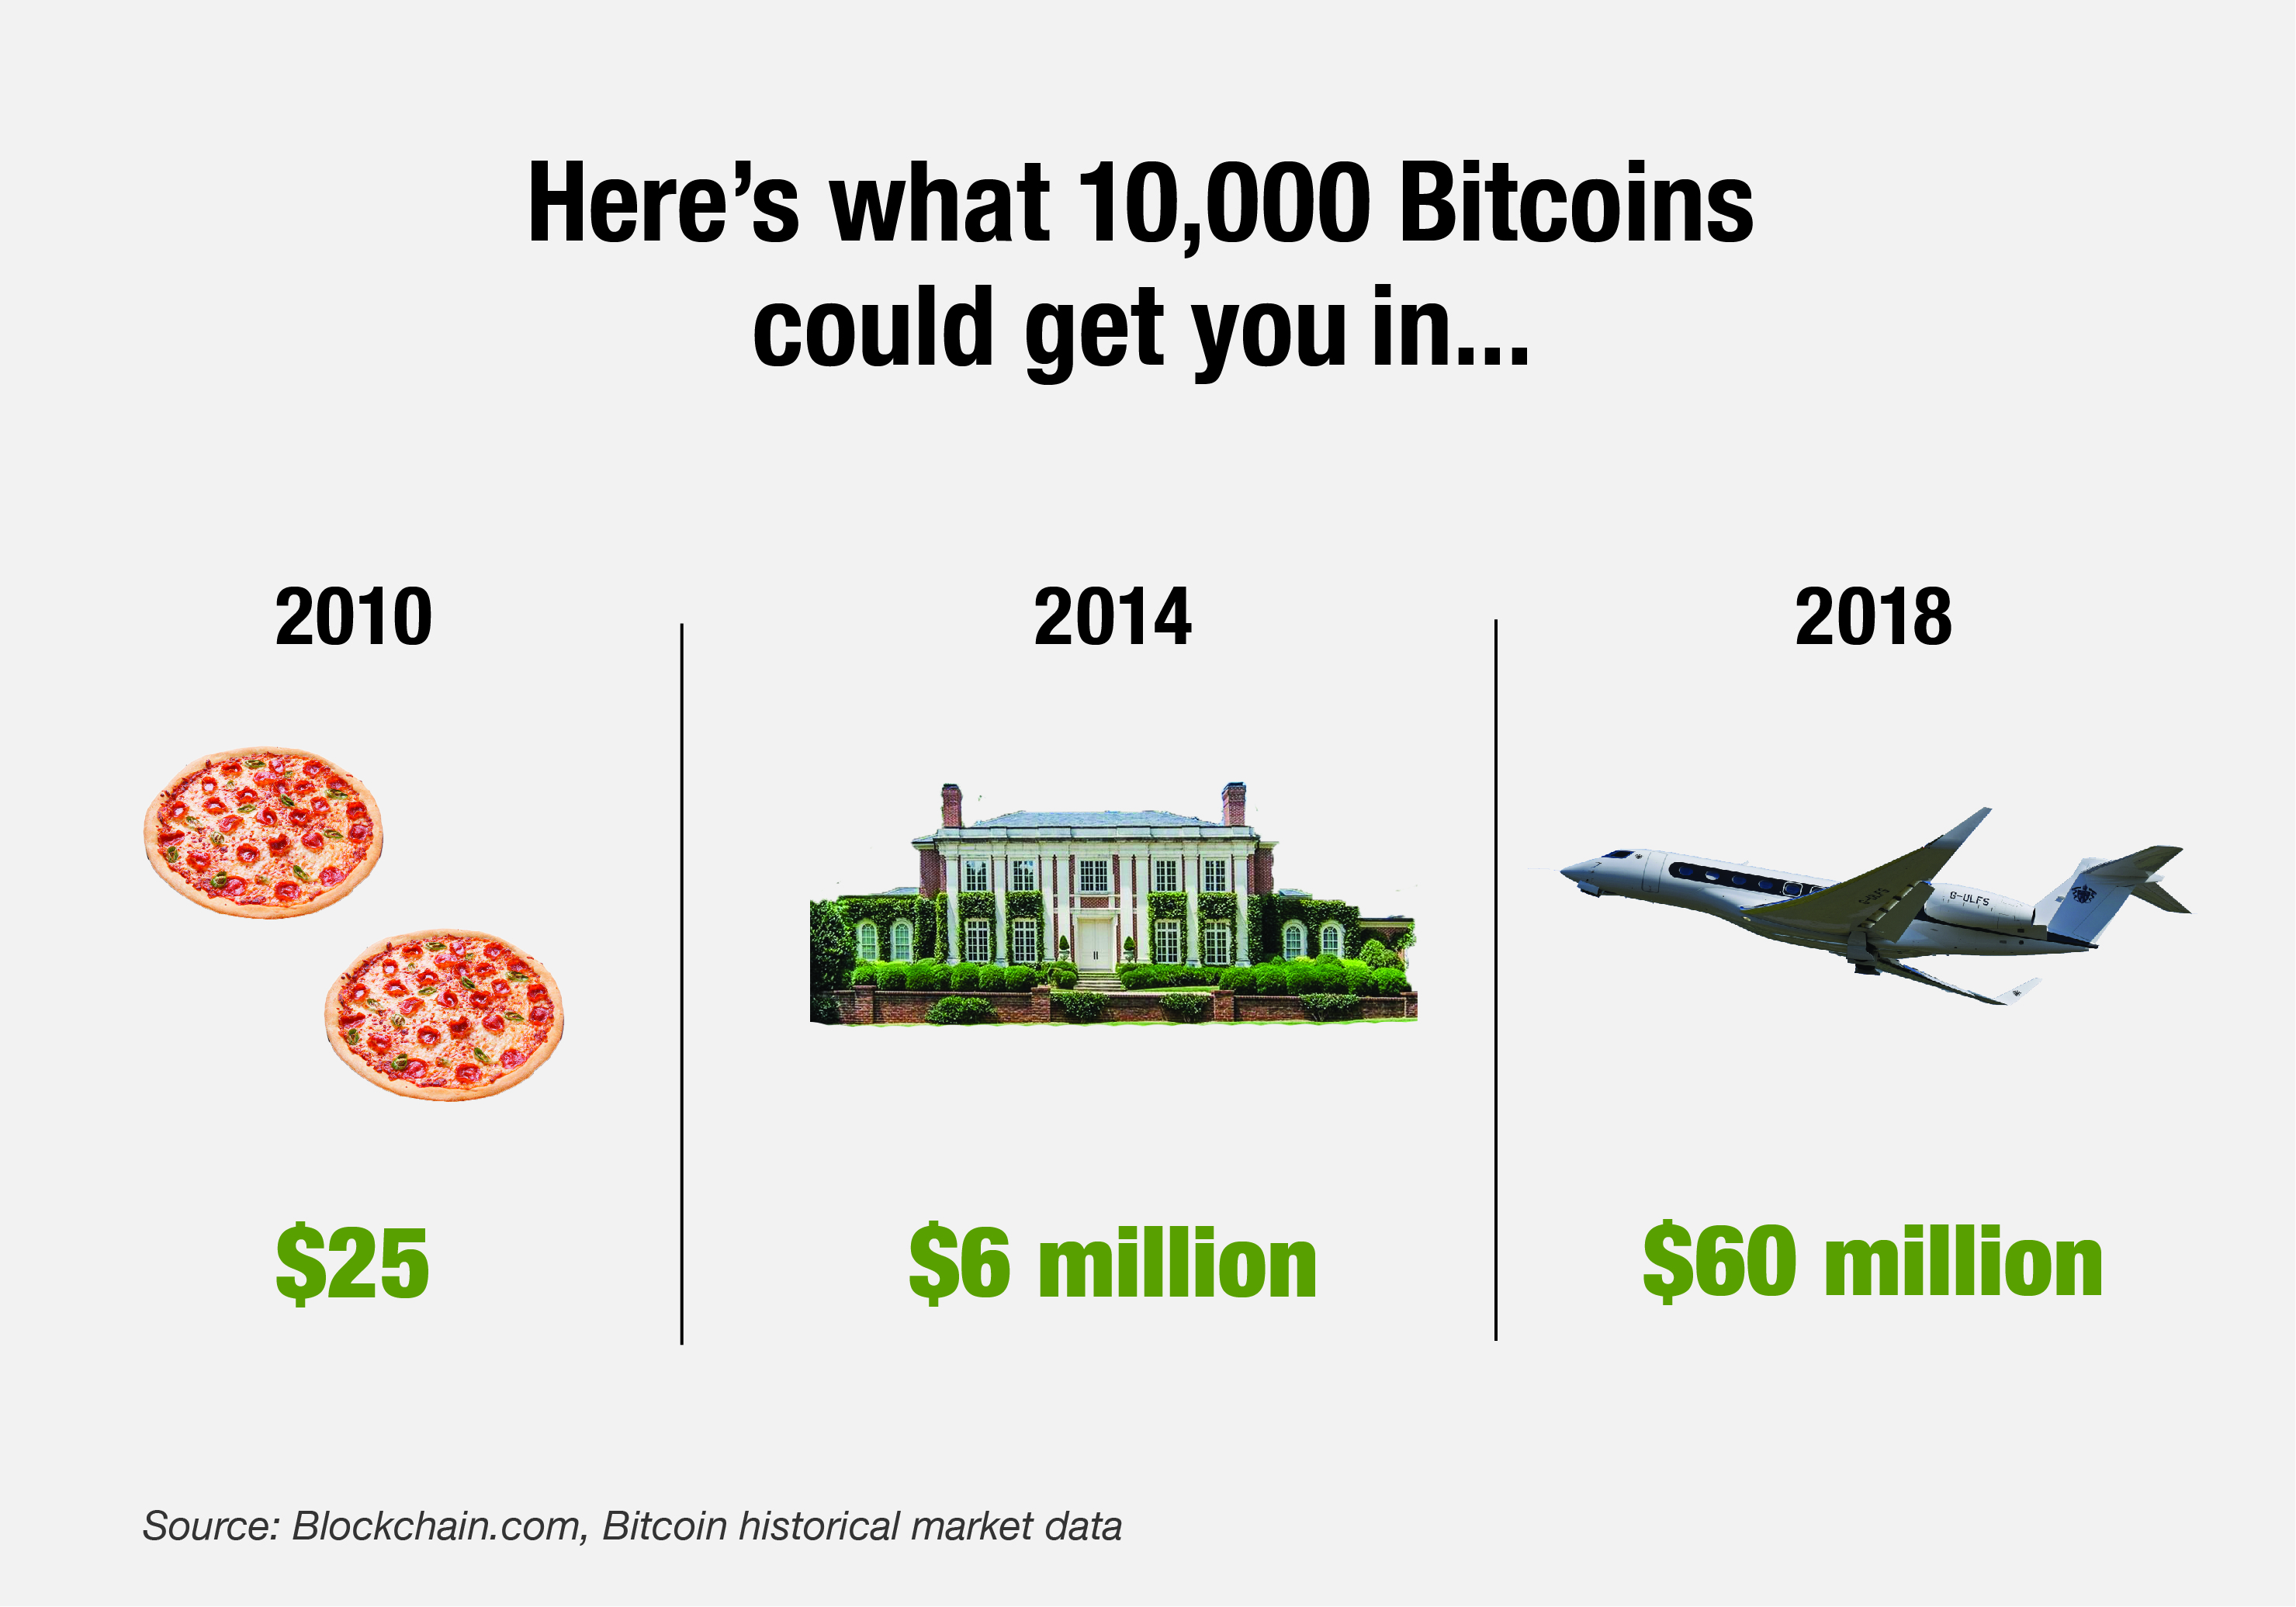 Bitcoin Value Over the Years